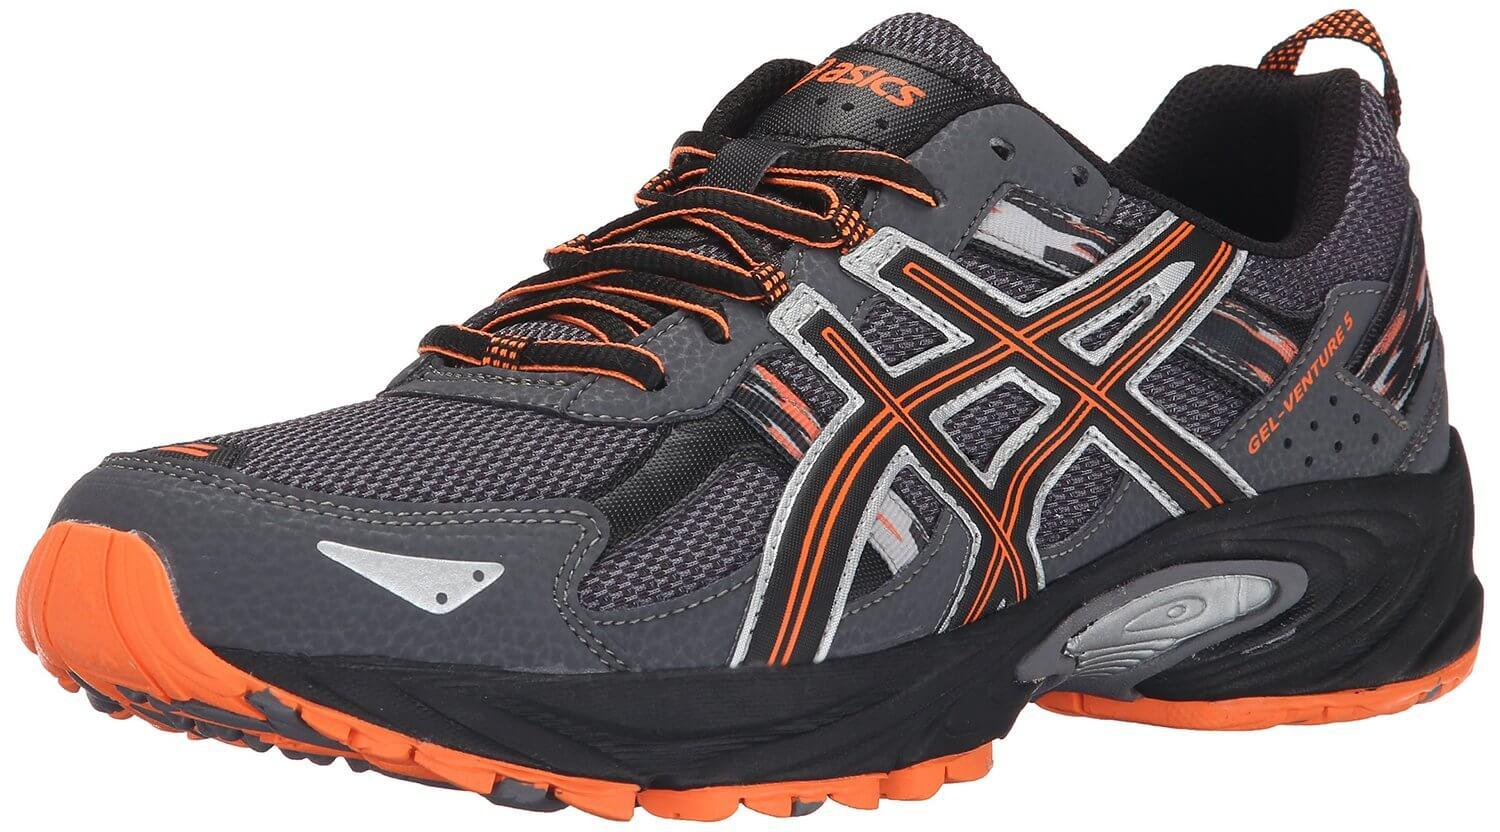 f84fb28b928 the Asics Gel Venture 5 is a low-cut trail running shoe that offers a ...